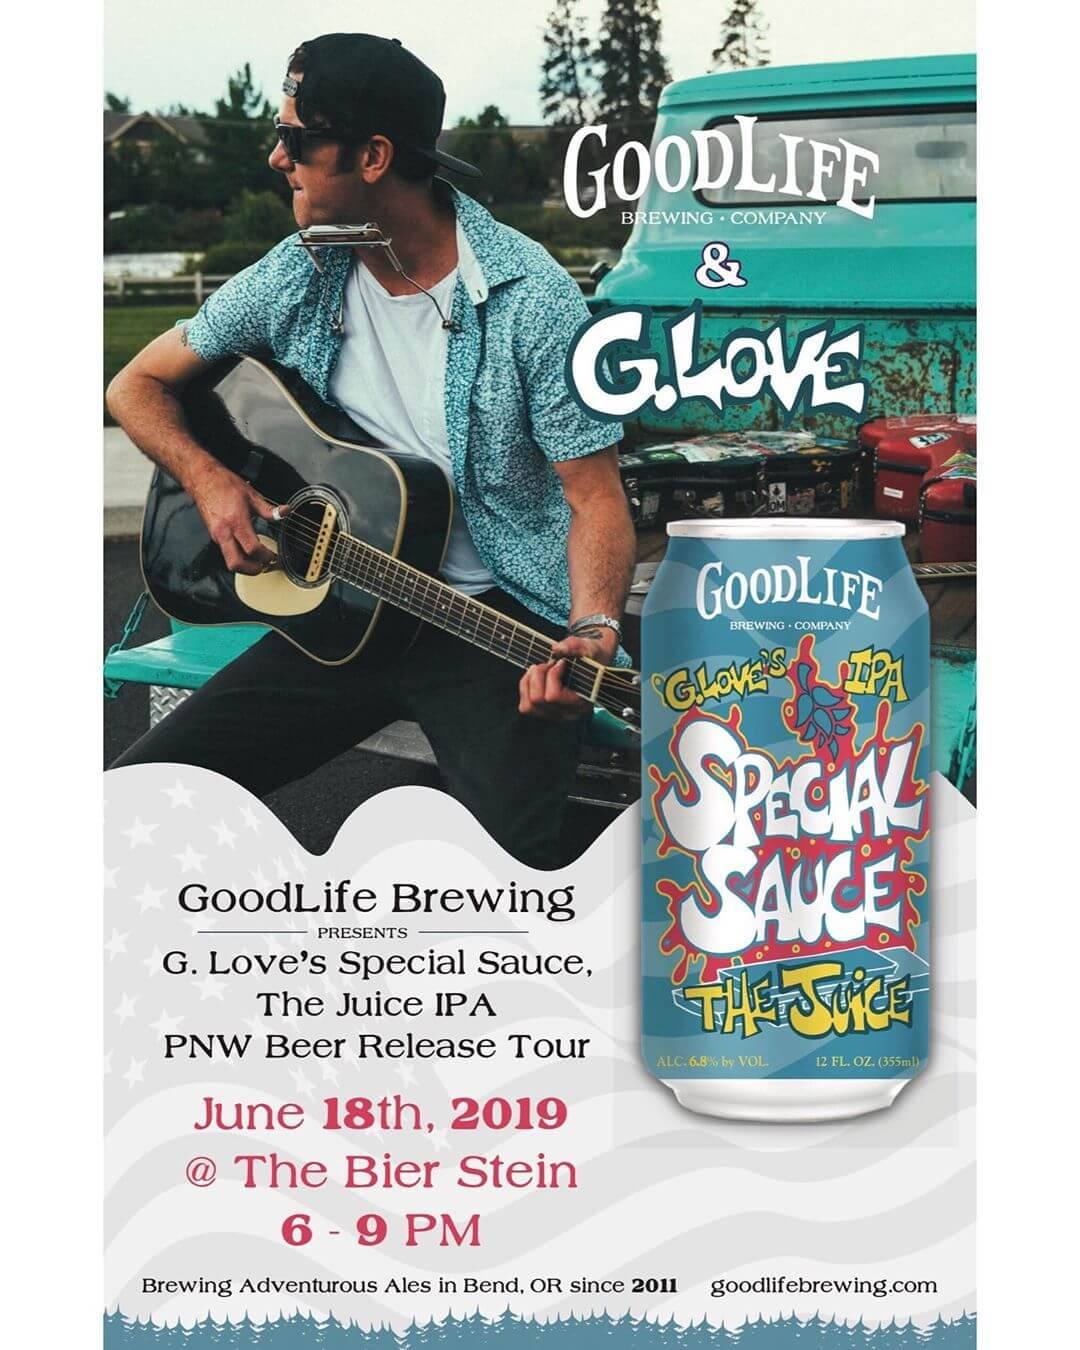 The GoodLife Juice Tour continues tomorrow @biersteineugene from 6pm-9pm and it's going to get loud! It's a free show but get there early to make sure you can get in! #goodlifejuicetour #whatsyourgoodlife